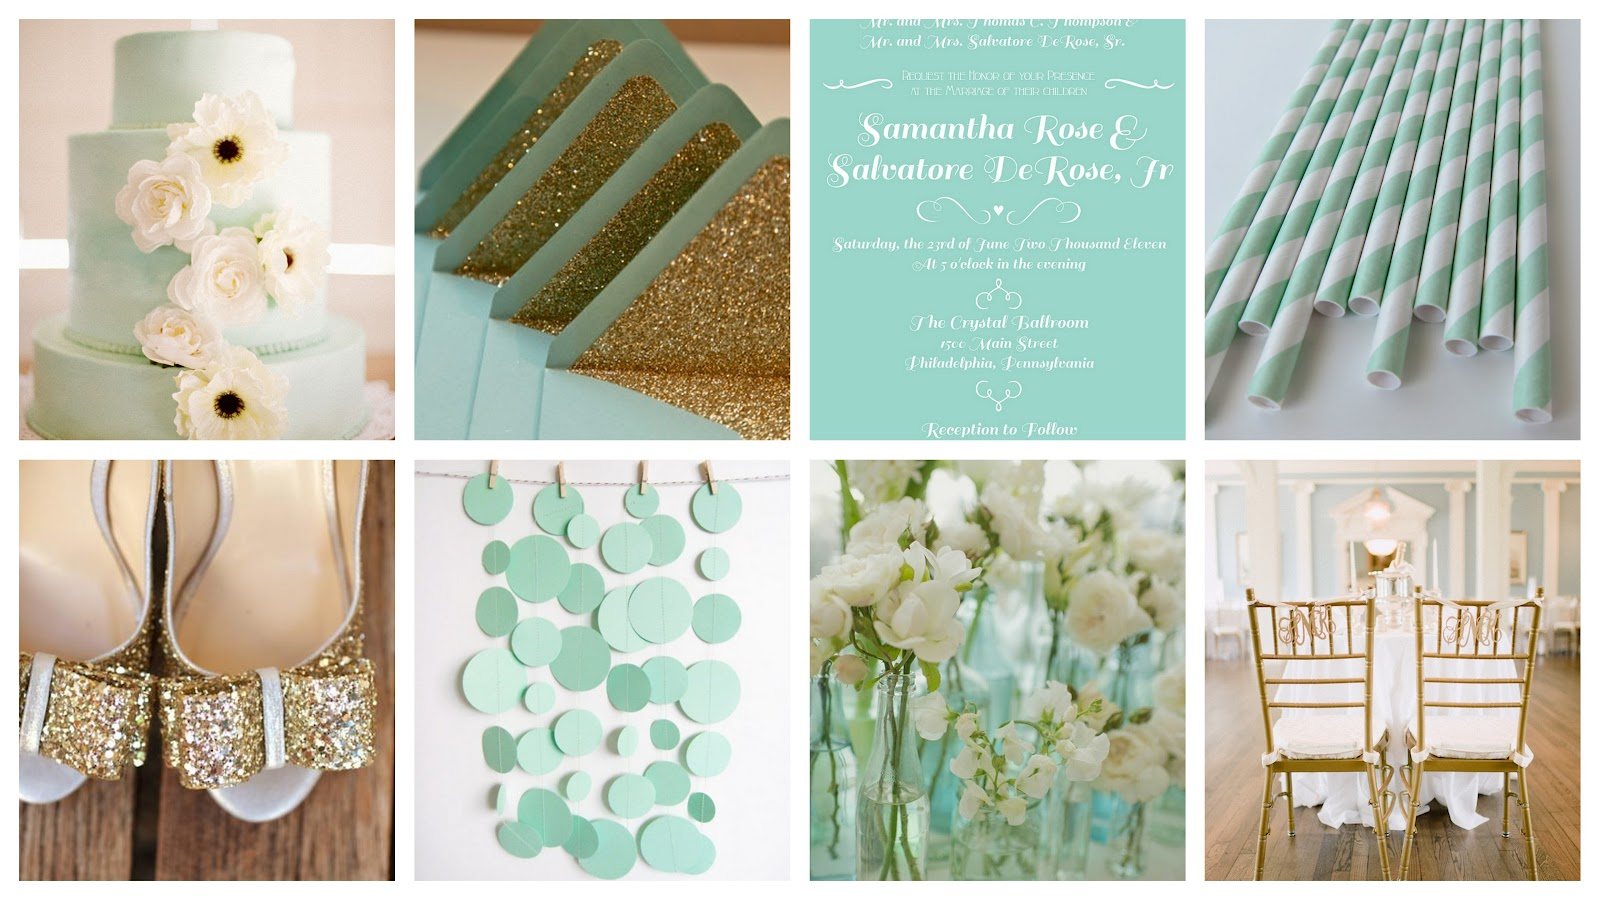 Pinklet and C: mint.gold.white - wedding inspiration